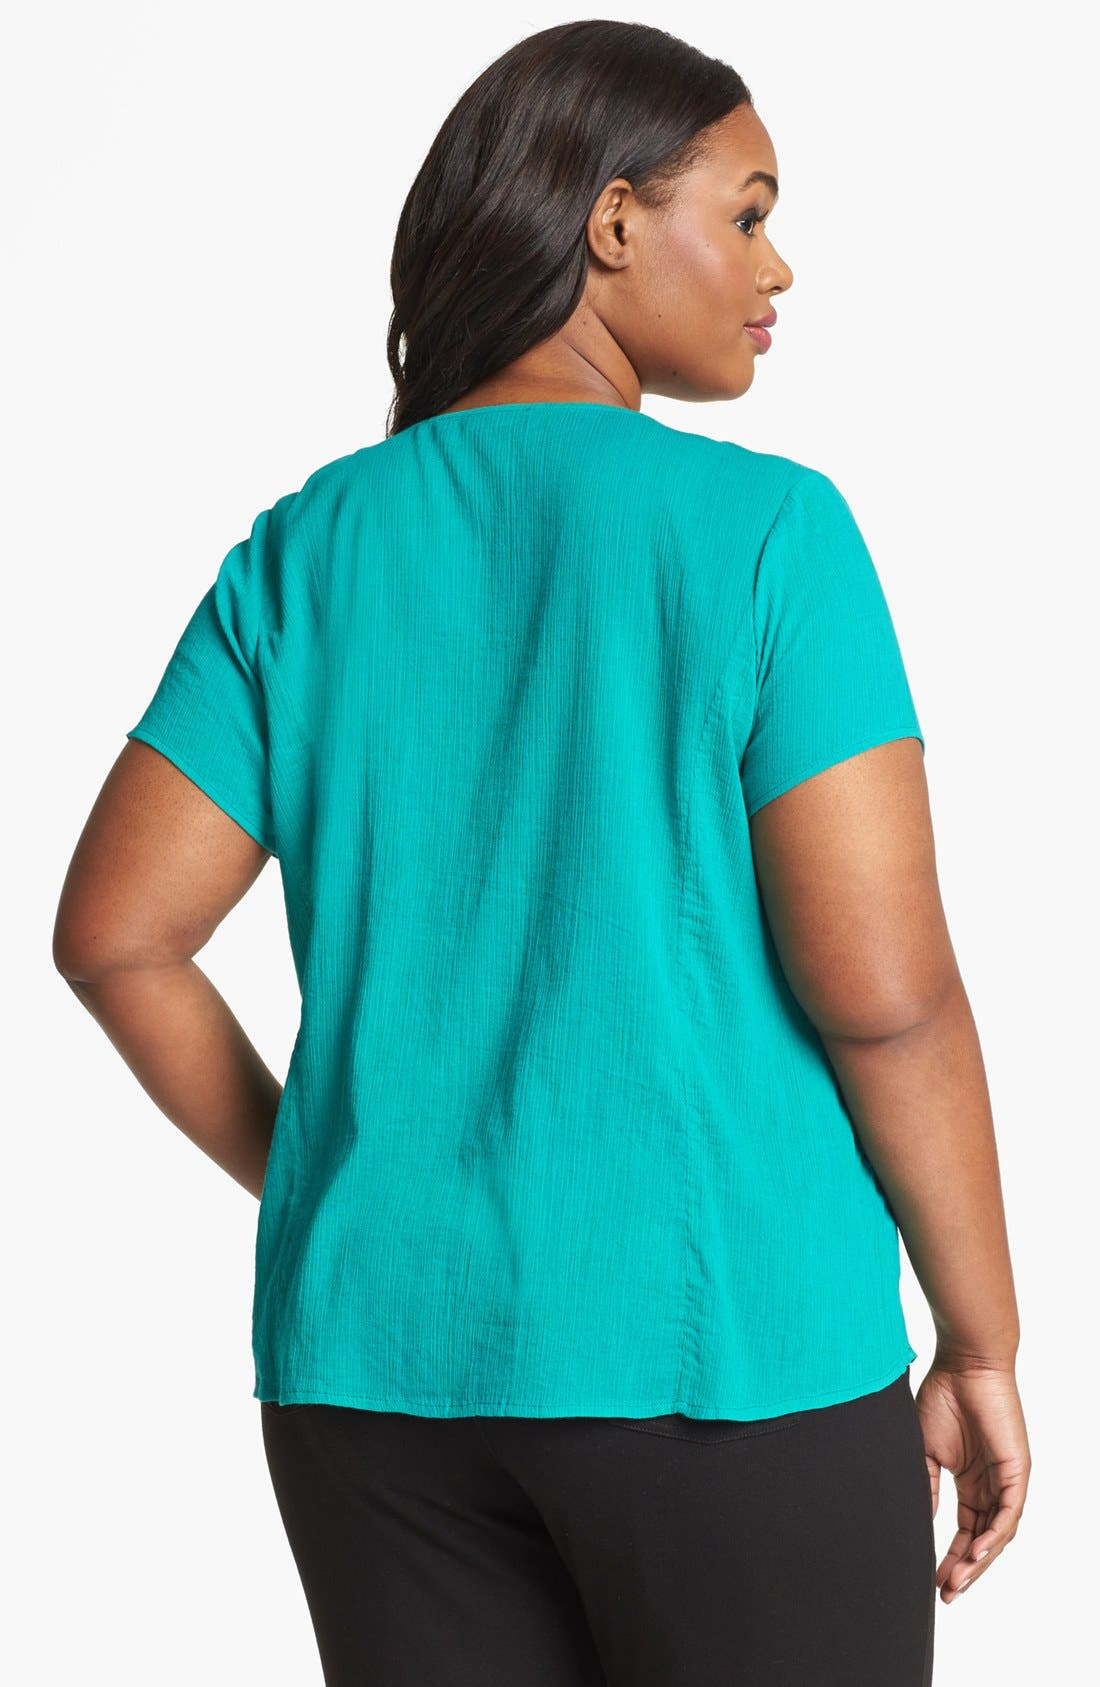 Alternate Image 2  - Lucky Brand 'Juniper' Contrast Thread Cotton Top (Plus Size)